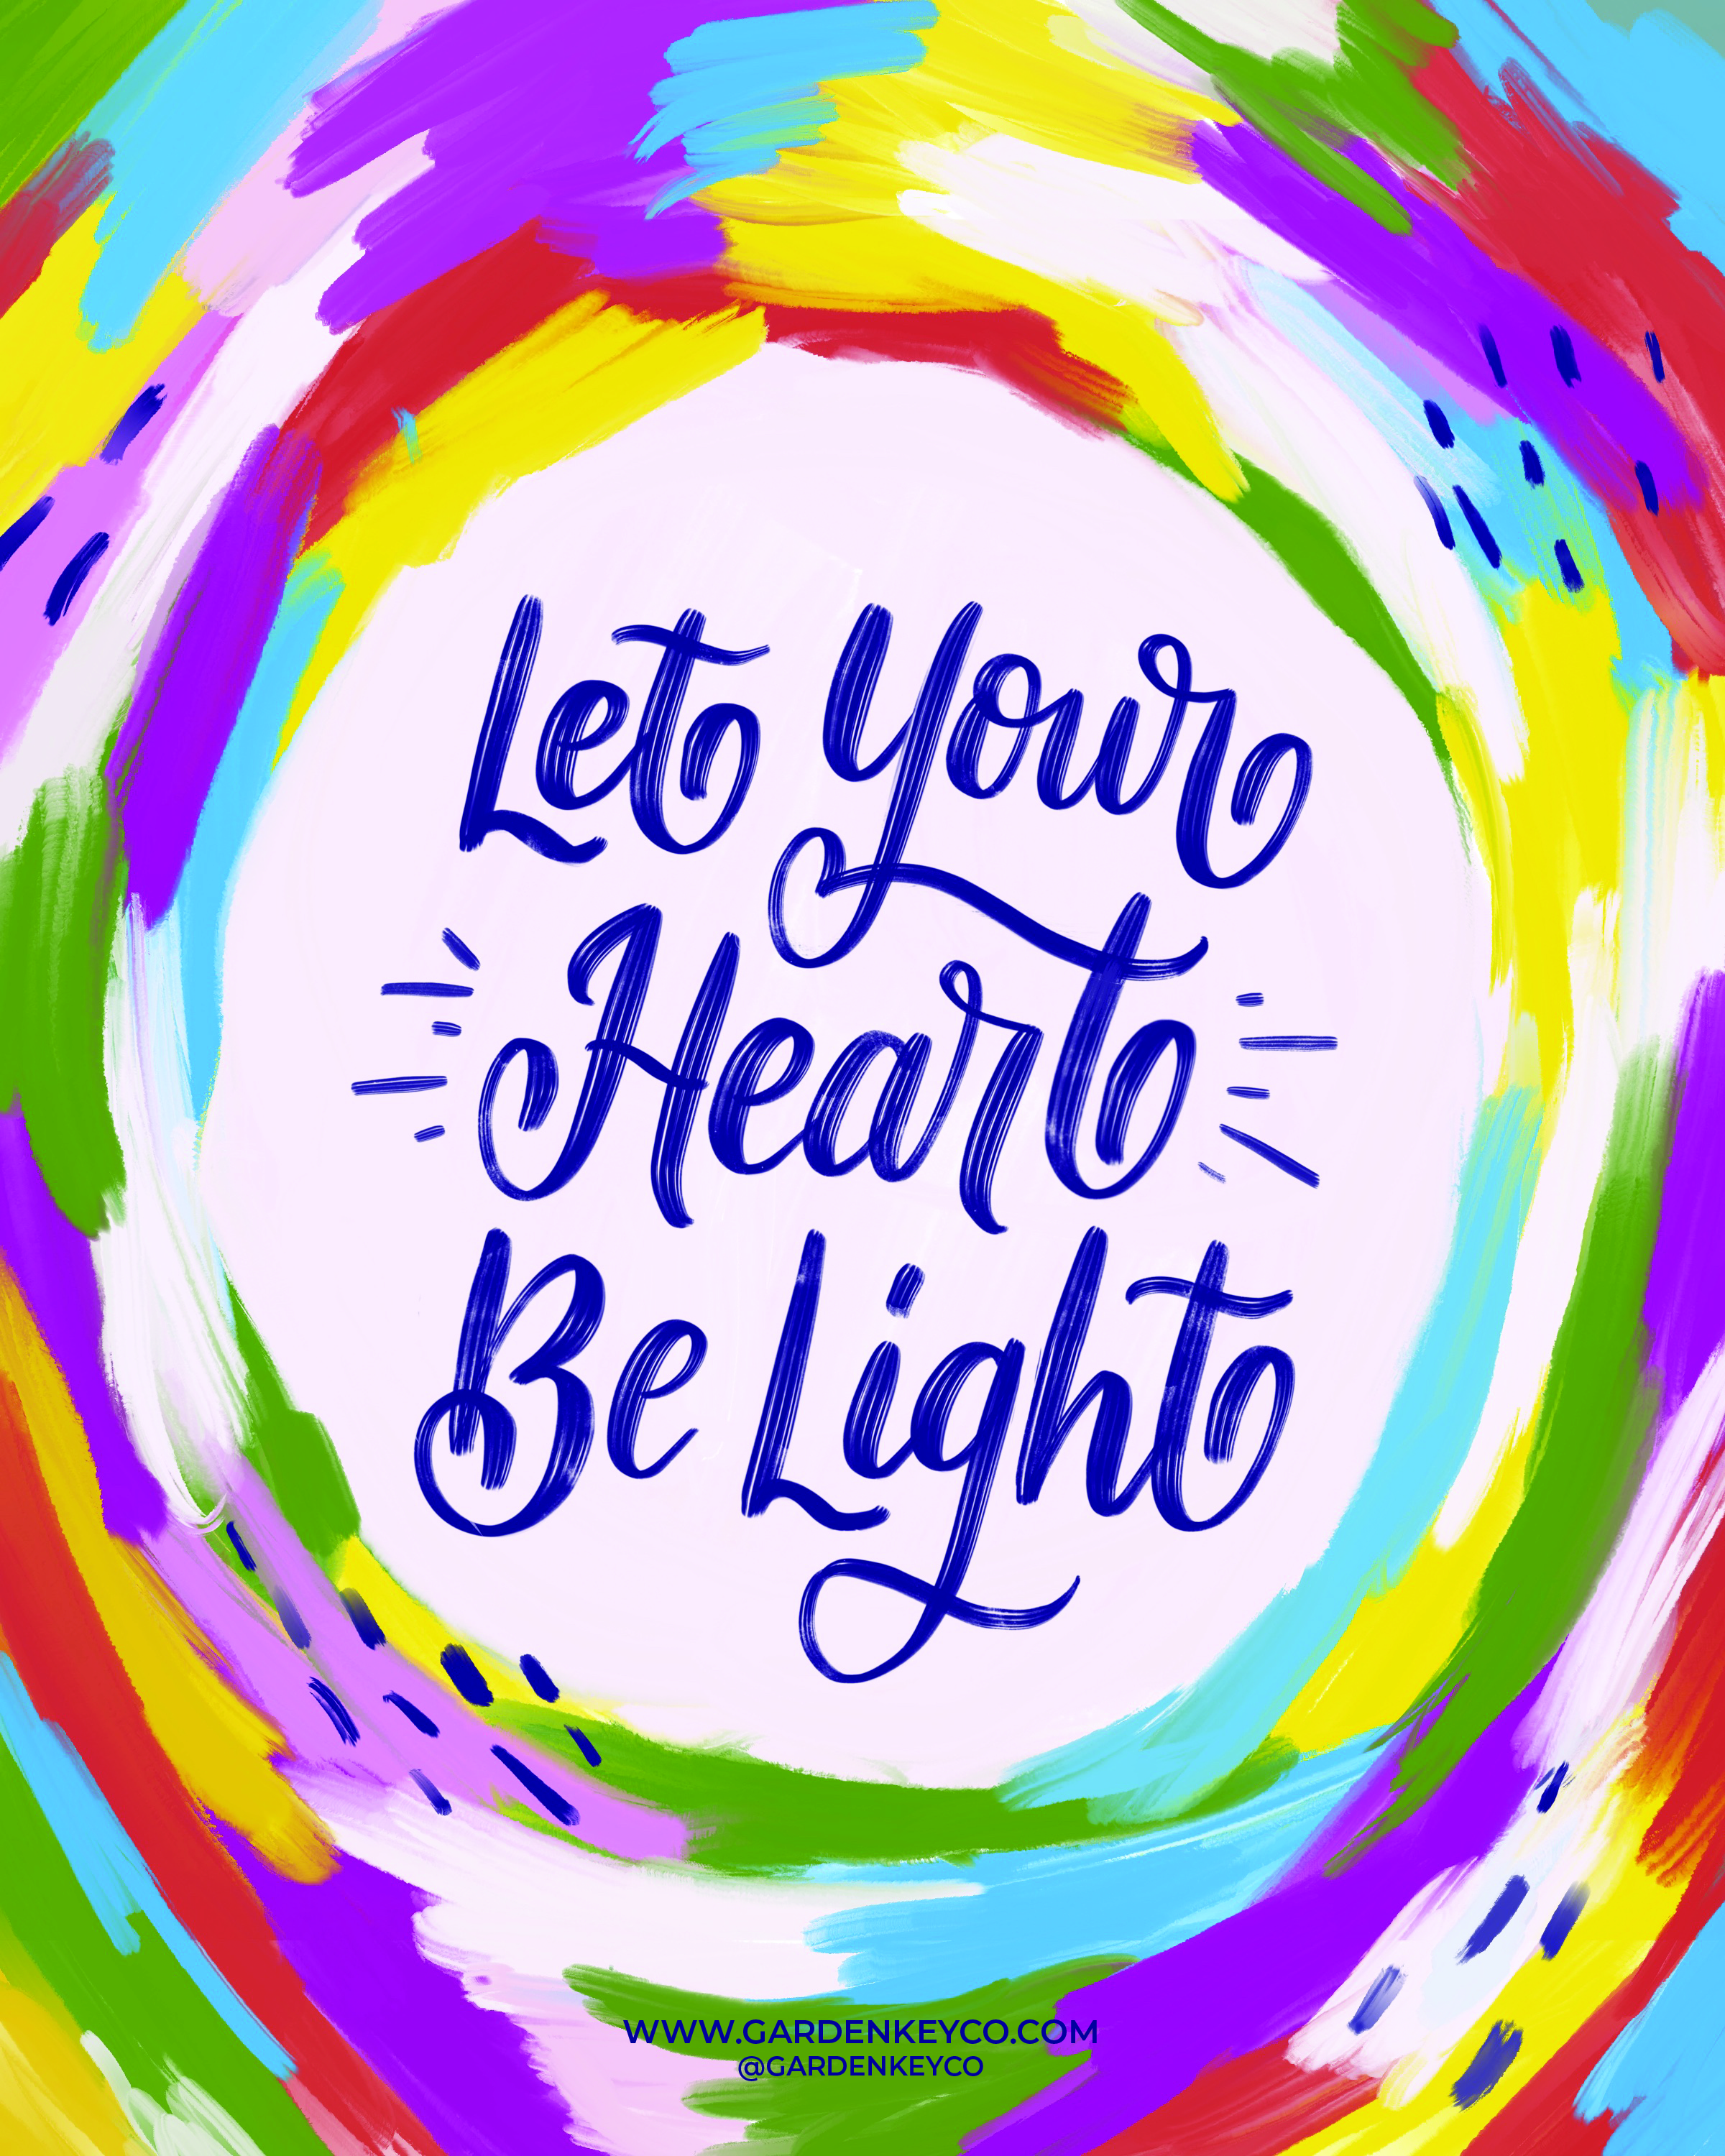 LET YOUR HEART BE LIGHT GARDEN KET CO. FREE PRINTABLE